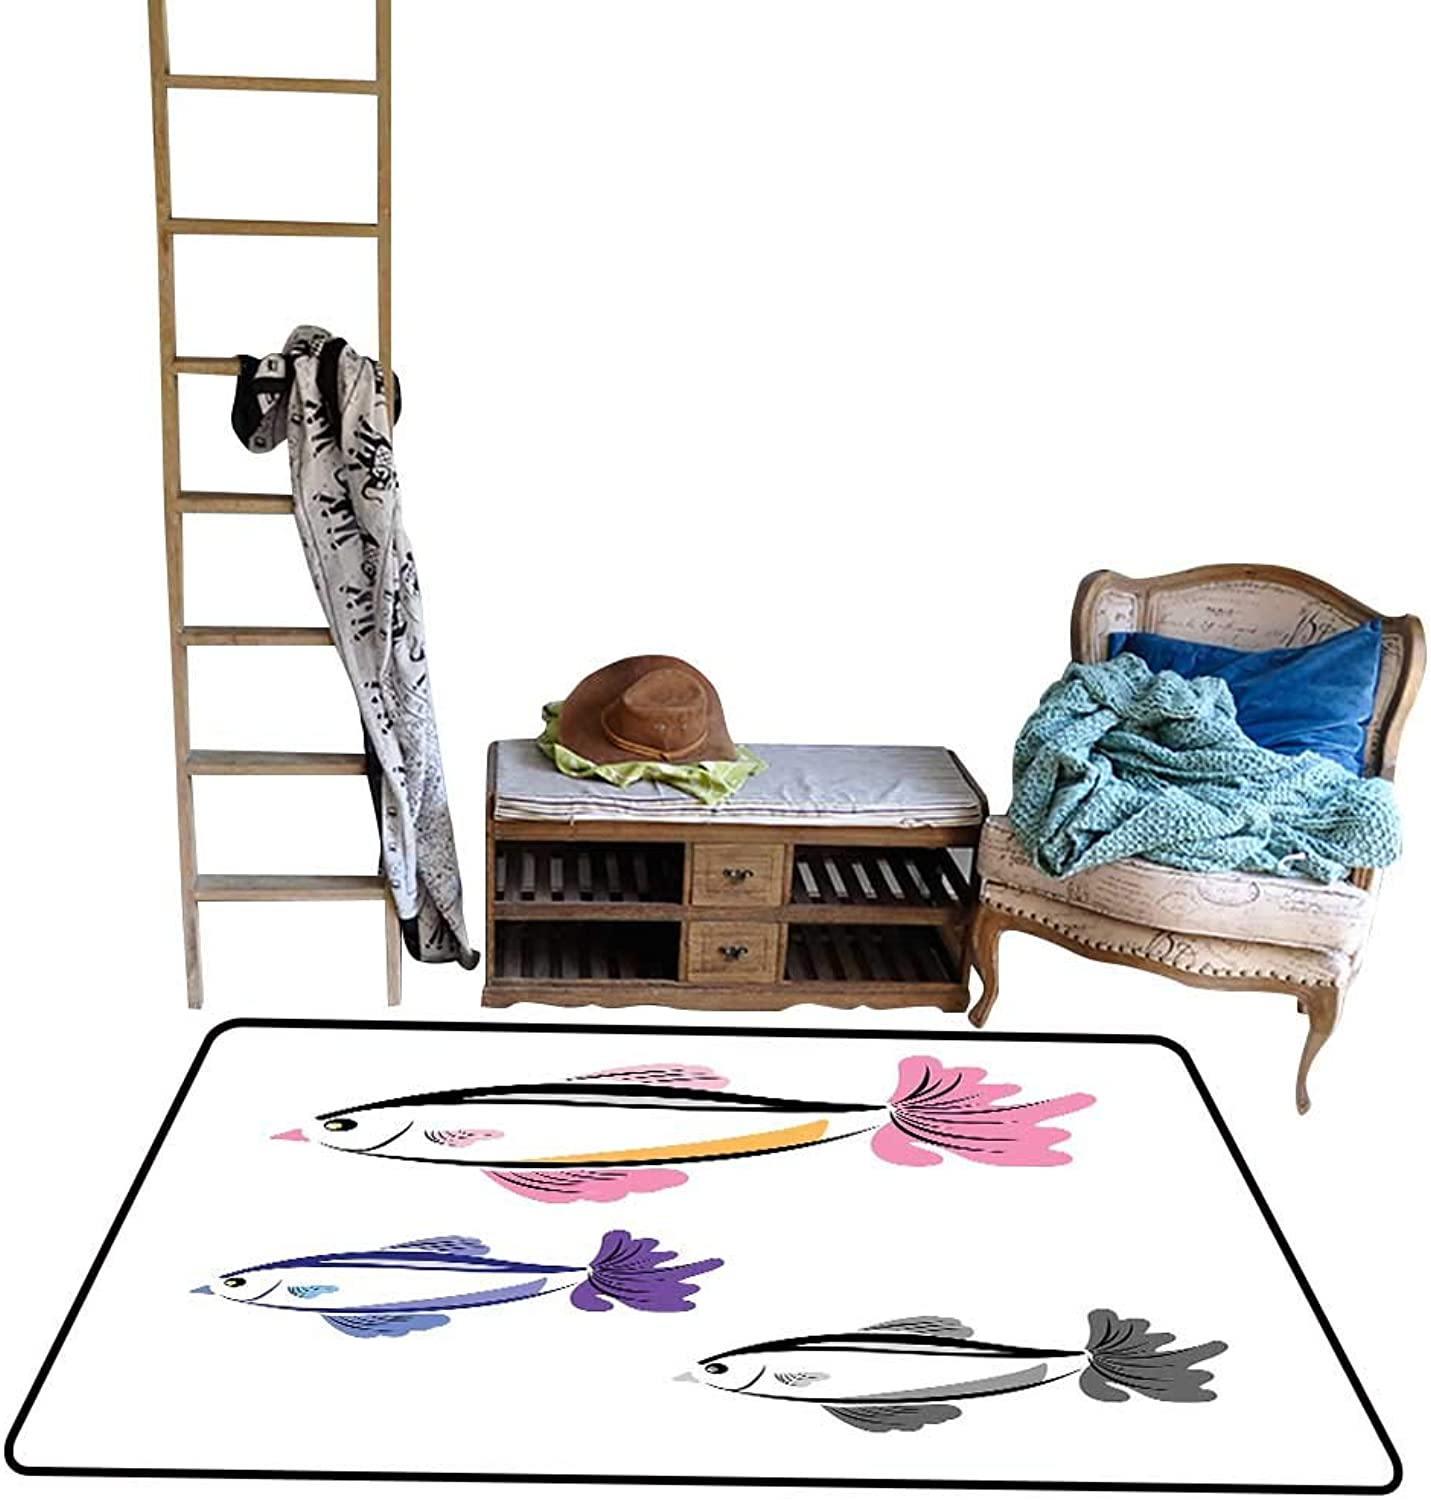 Decorative Floor mat,Illustrated Marine Aquarium Fishes with The Face of a Bird Hand Drawn 4'x6',Can be Used for Floor Decoration